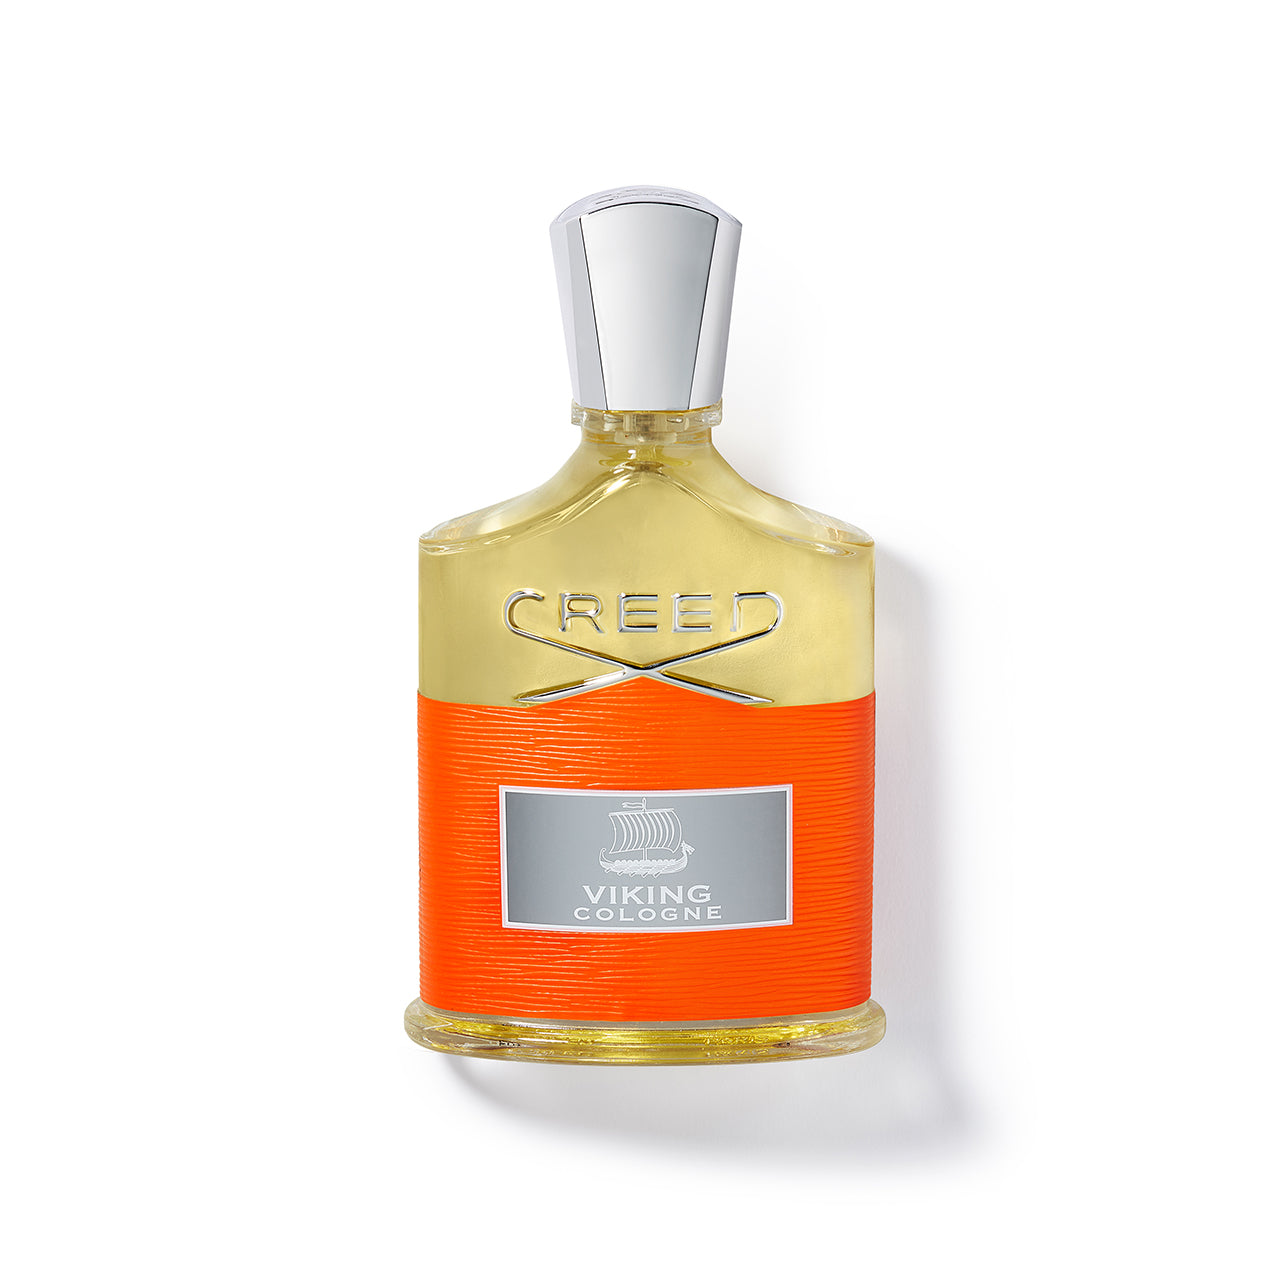 Creed Viking Cologne